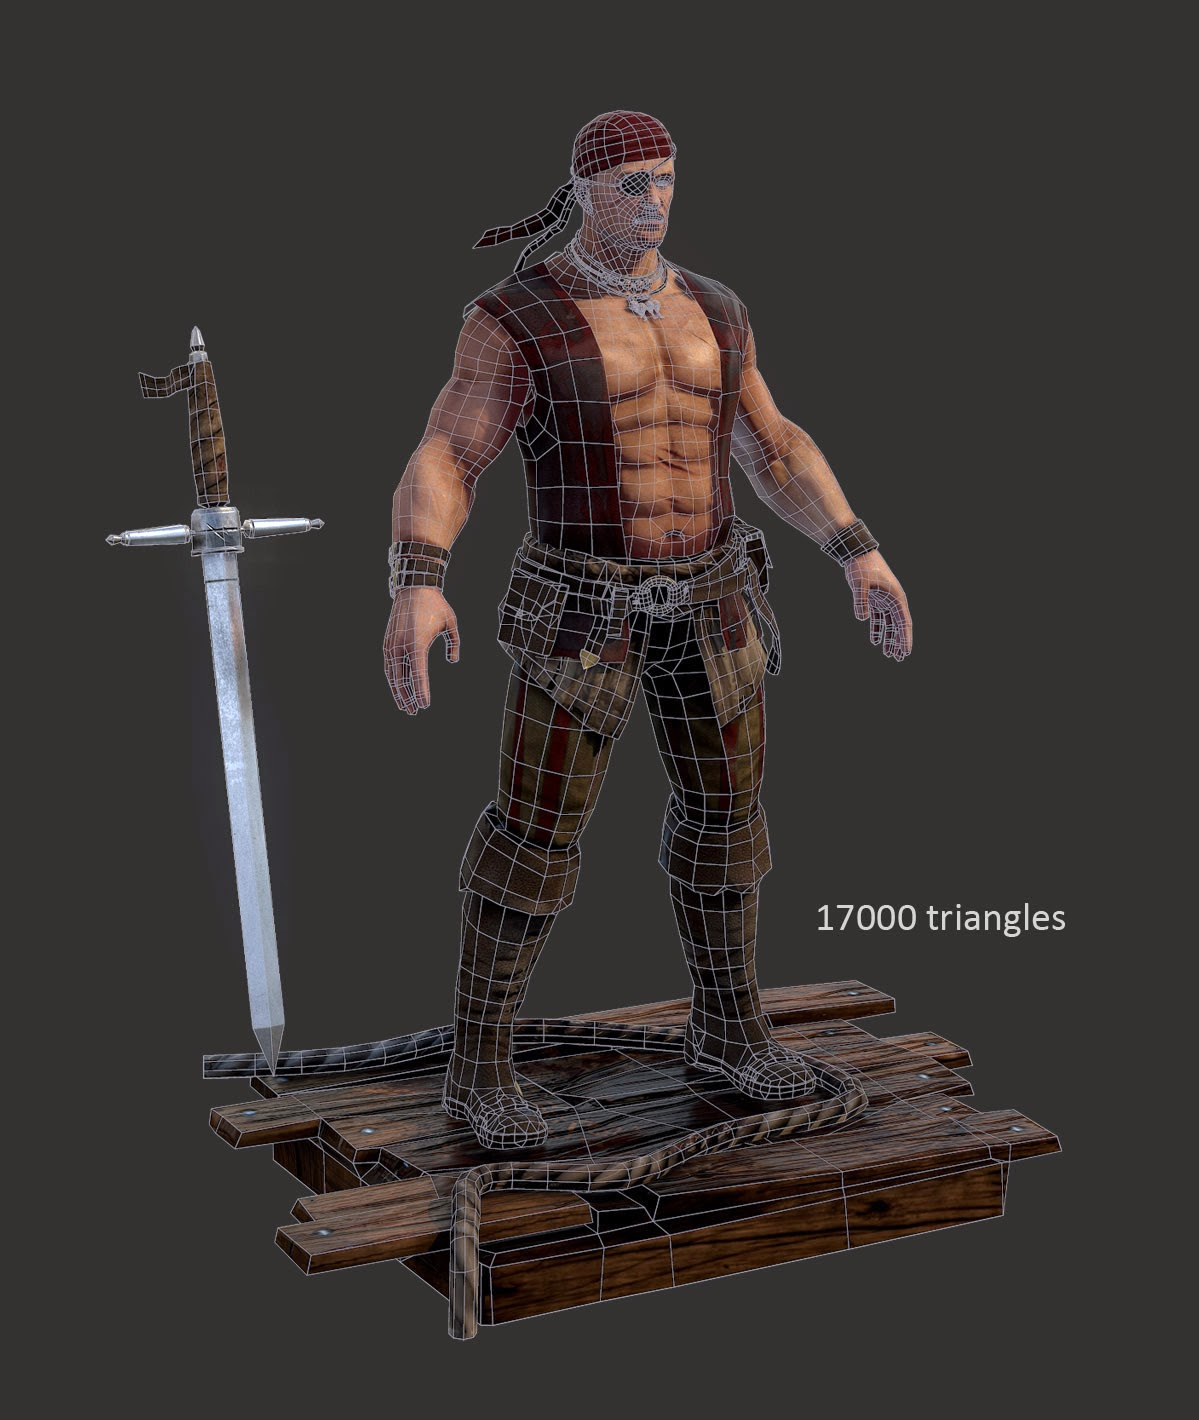 3d video game characters having some fun 10 part 2 of 2 4